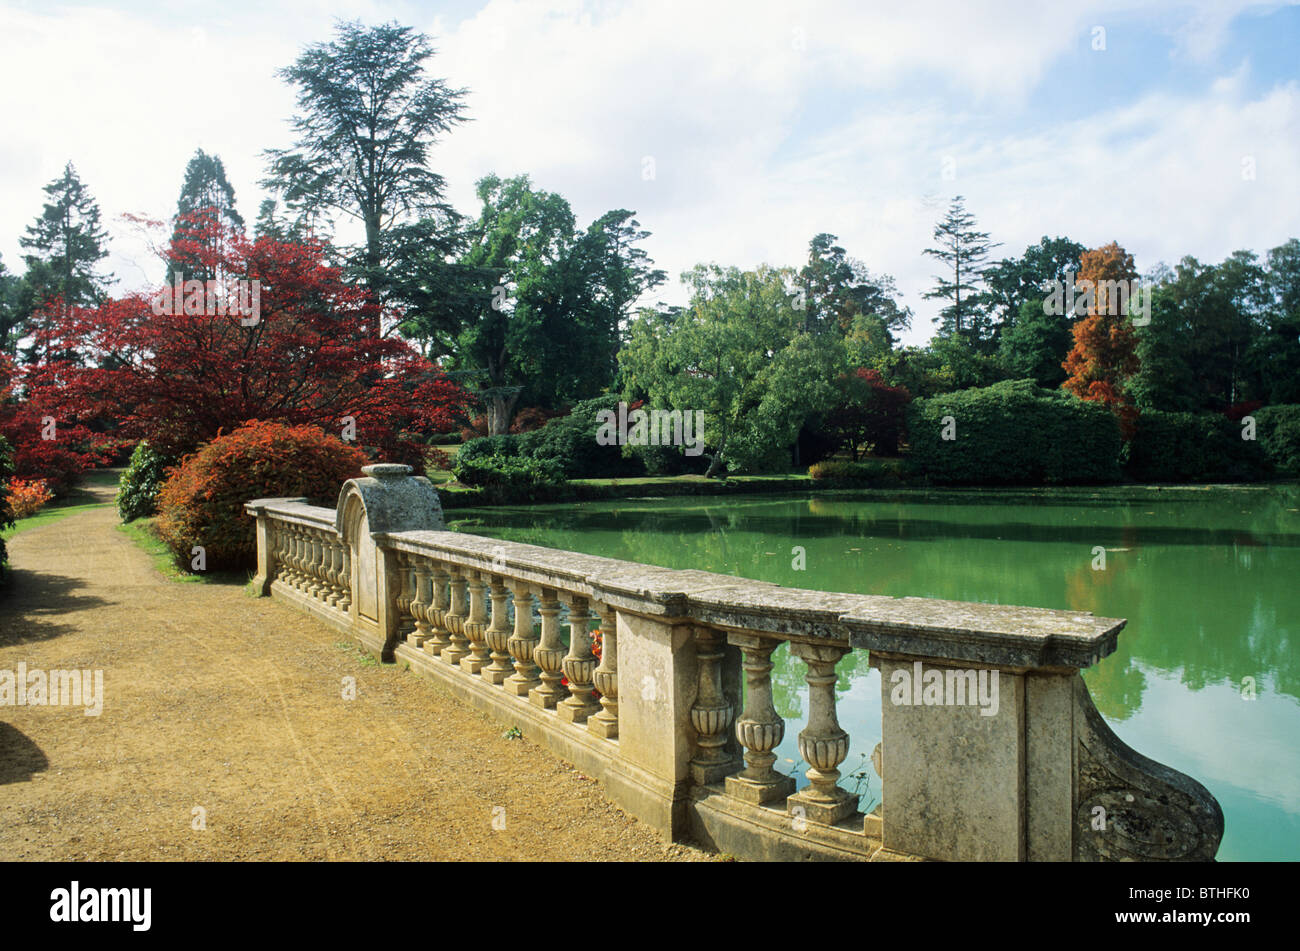 Sheffield park sussex bridge over lake capability brown for Capability brown garden designs